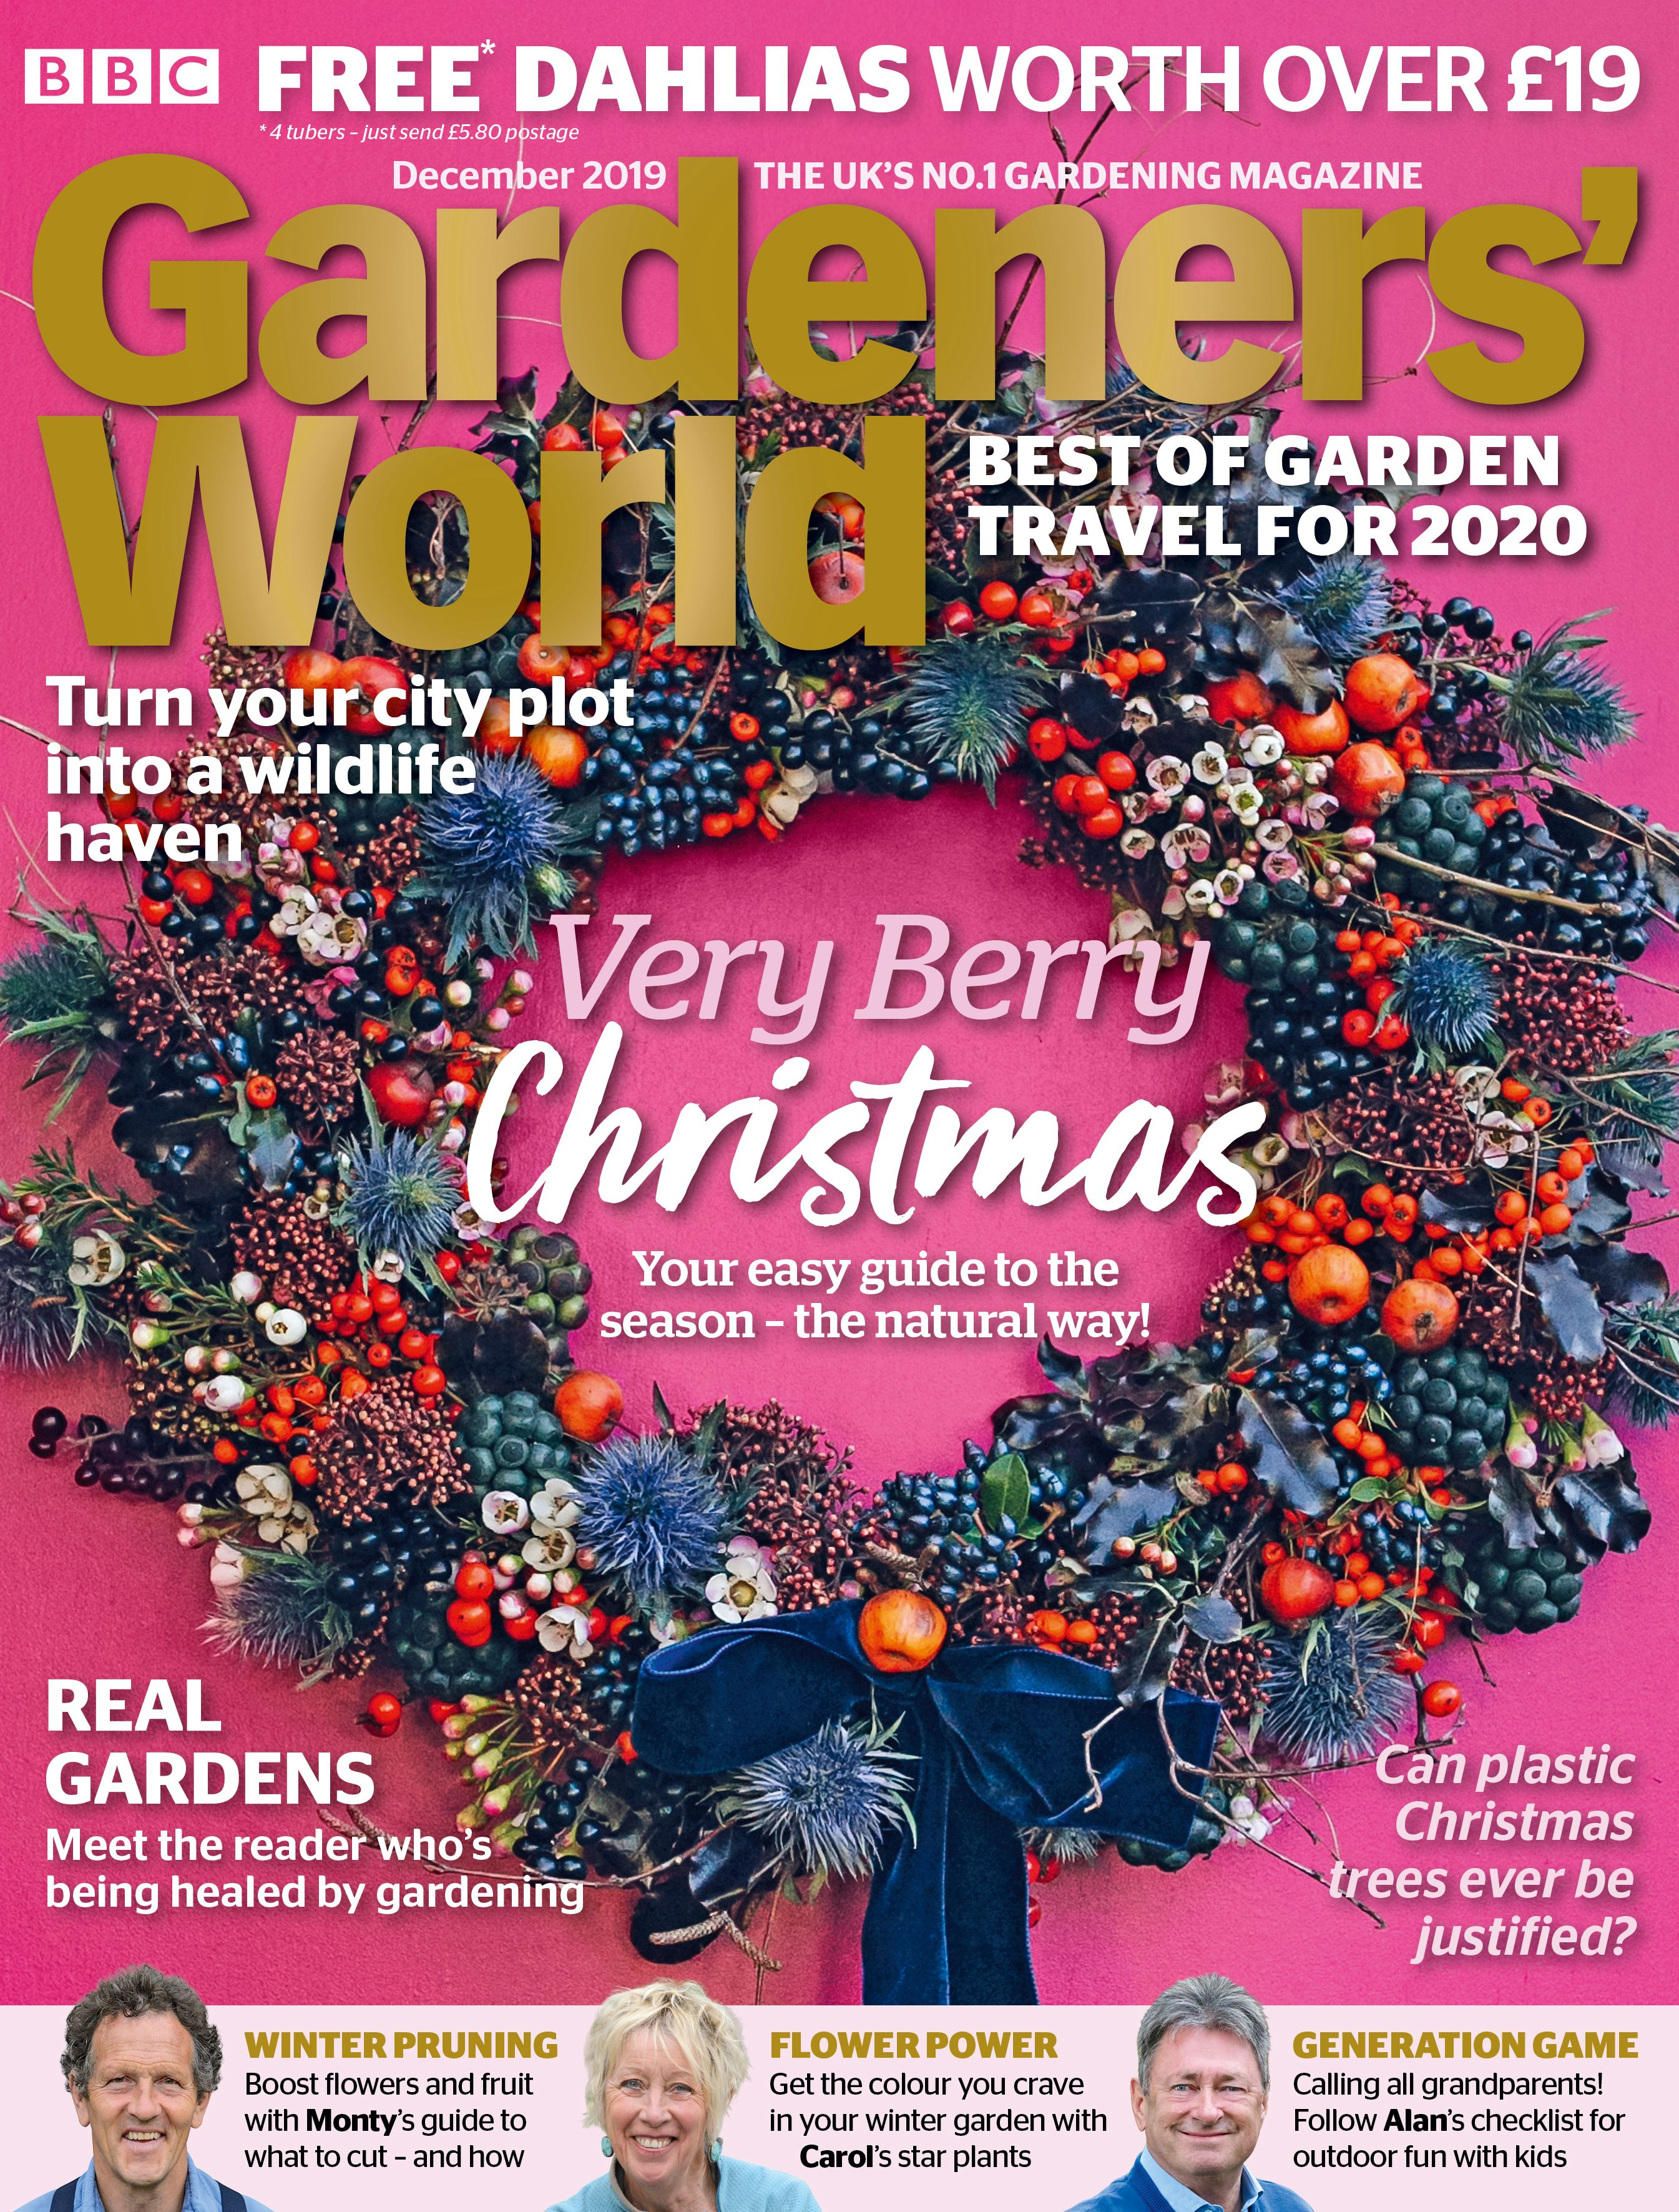 Anna Potter S Foraged Christmas Wreath Photograph By India Hobson Gardening Magazines Bbc Magazine